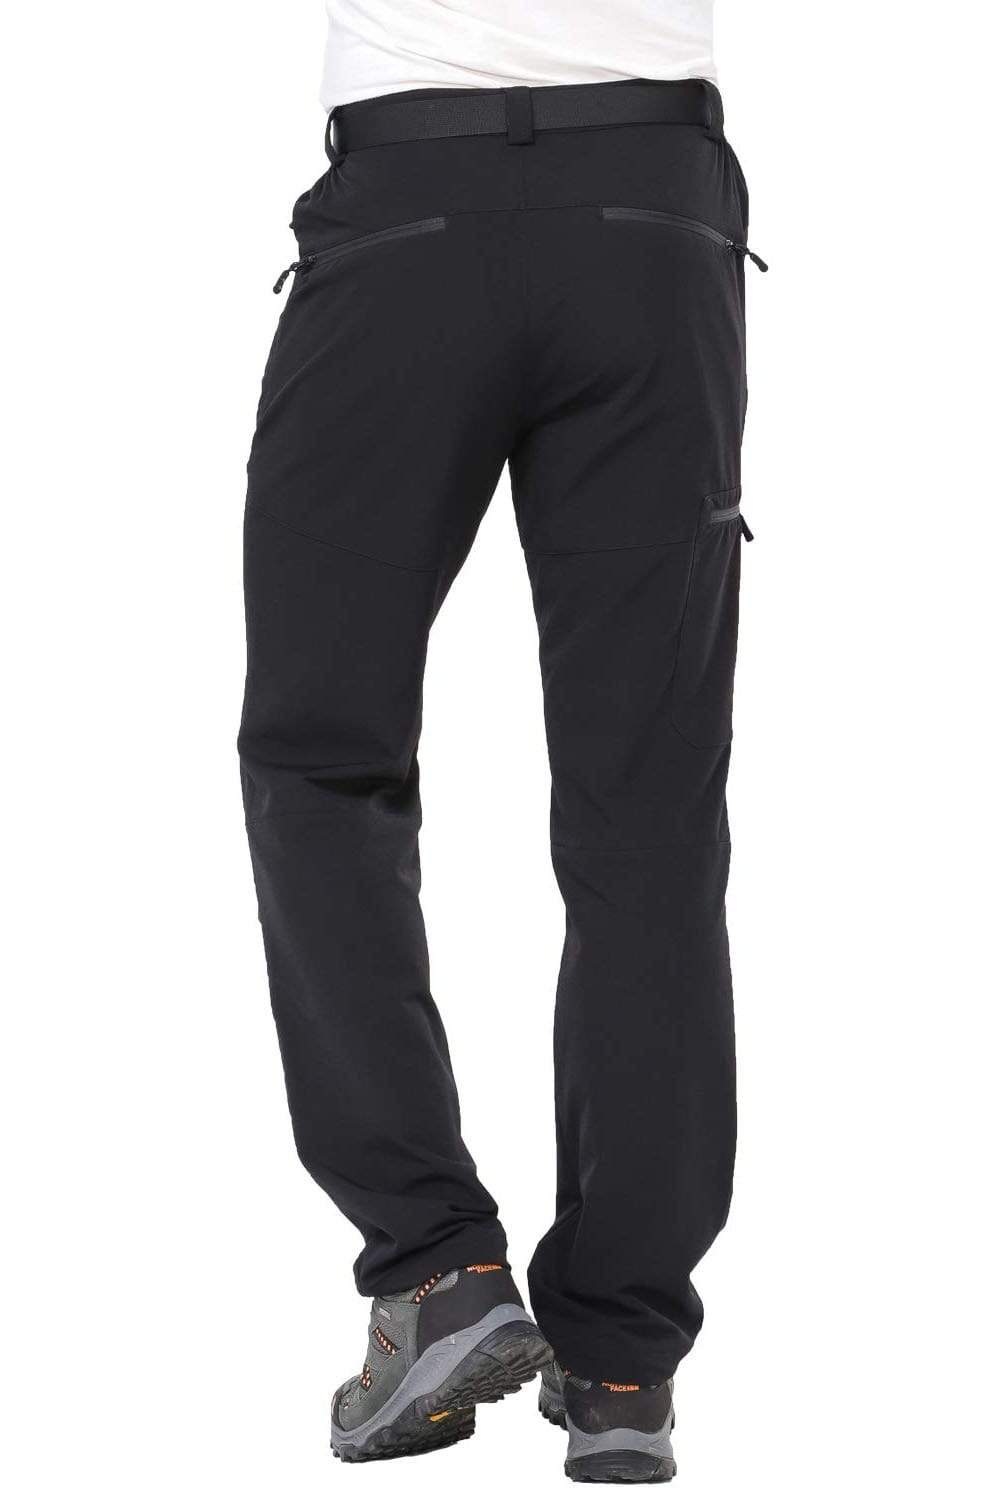 MIER Men's Stretch Cargo Hiking Pants Water Resistant Tactical Pants with 5 Zipper Pockets